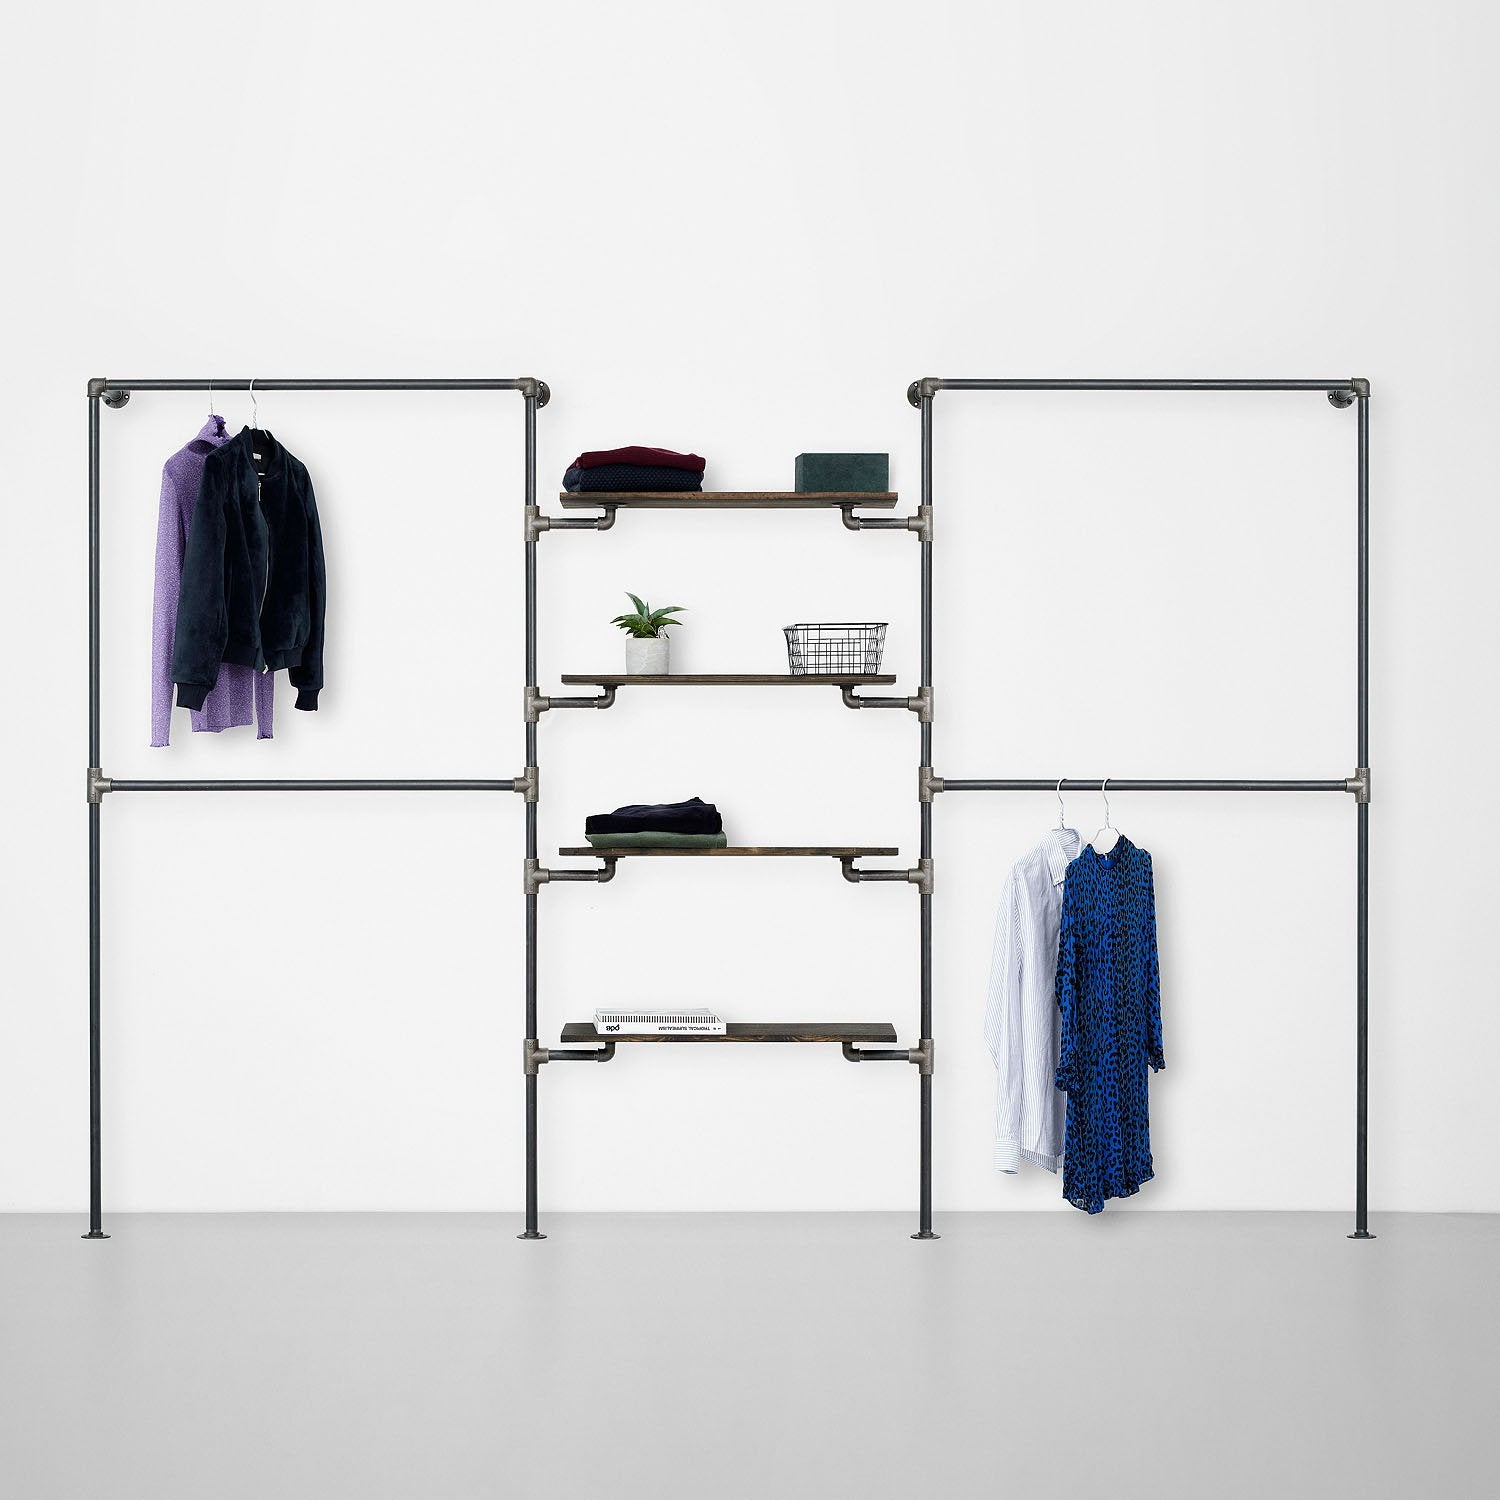 The Walk-In 3 row wardrobe system - 2 rails / 4 shelves / 2 rails